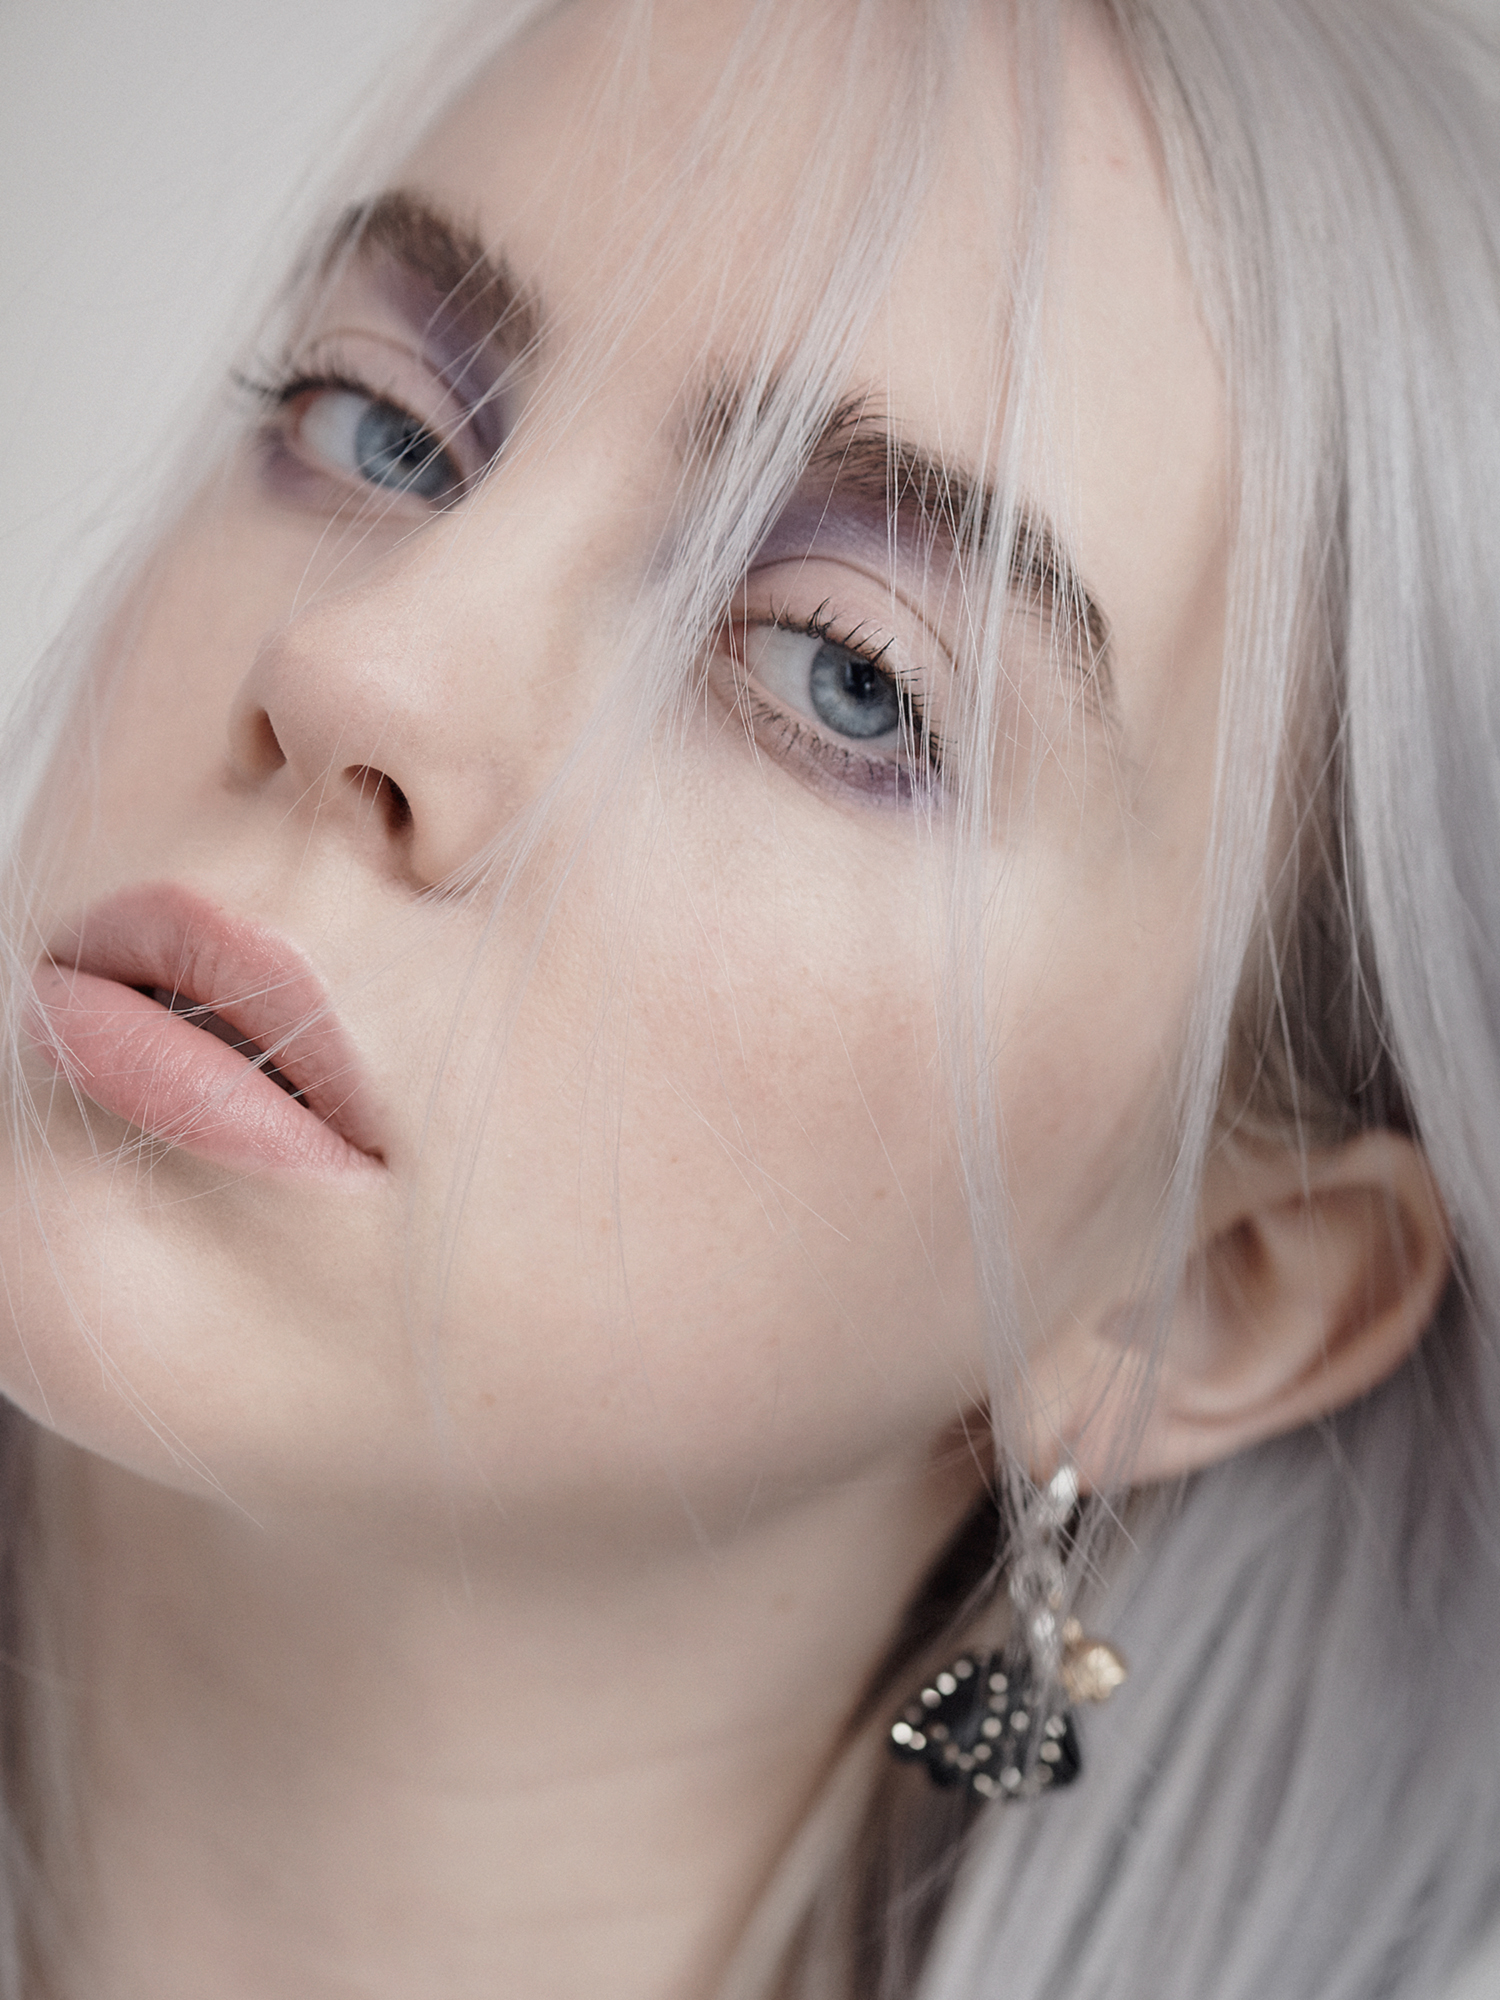 04_INTERVIEW_BILLIE_EILISH_044_RT_JR.jpg